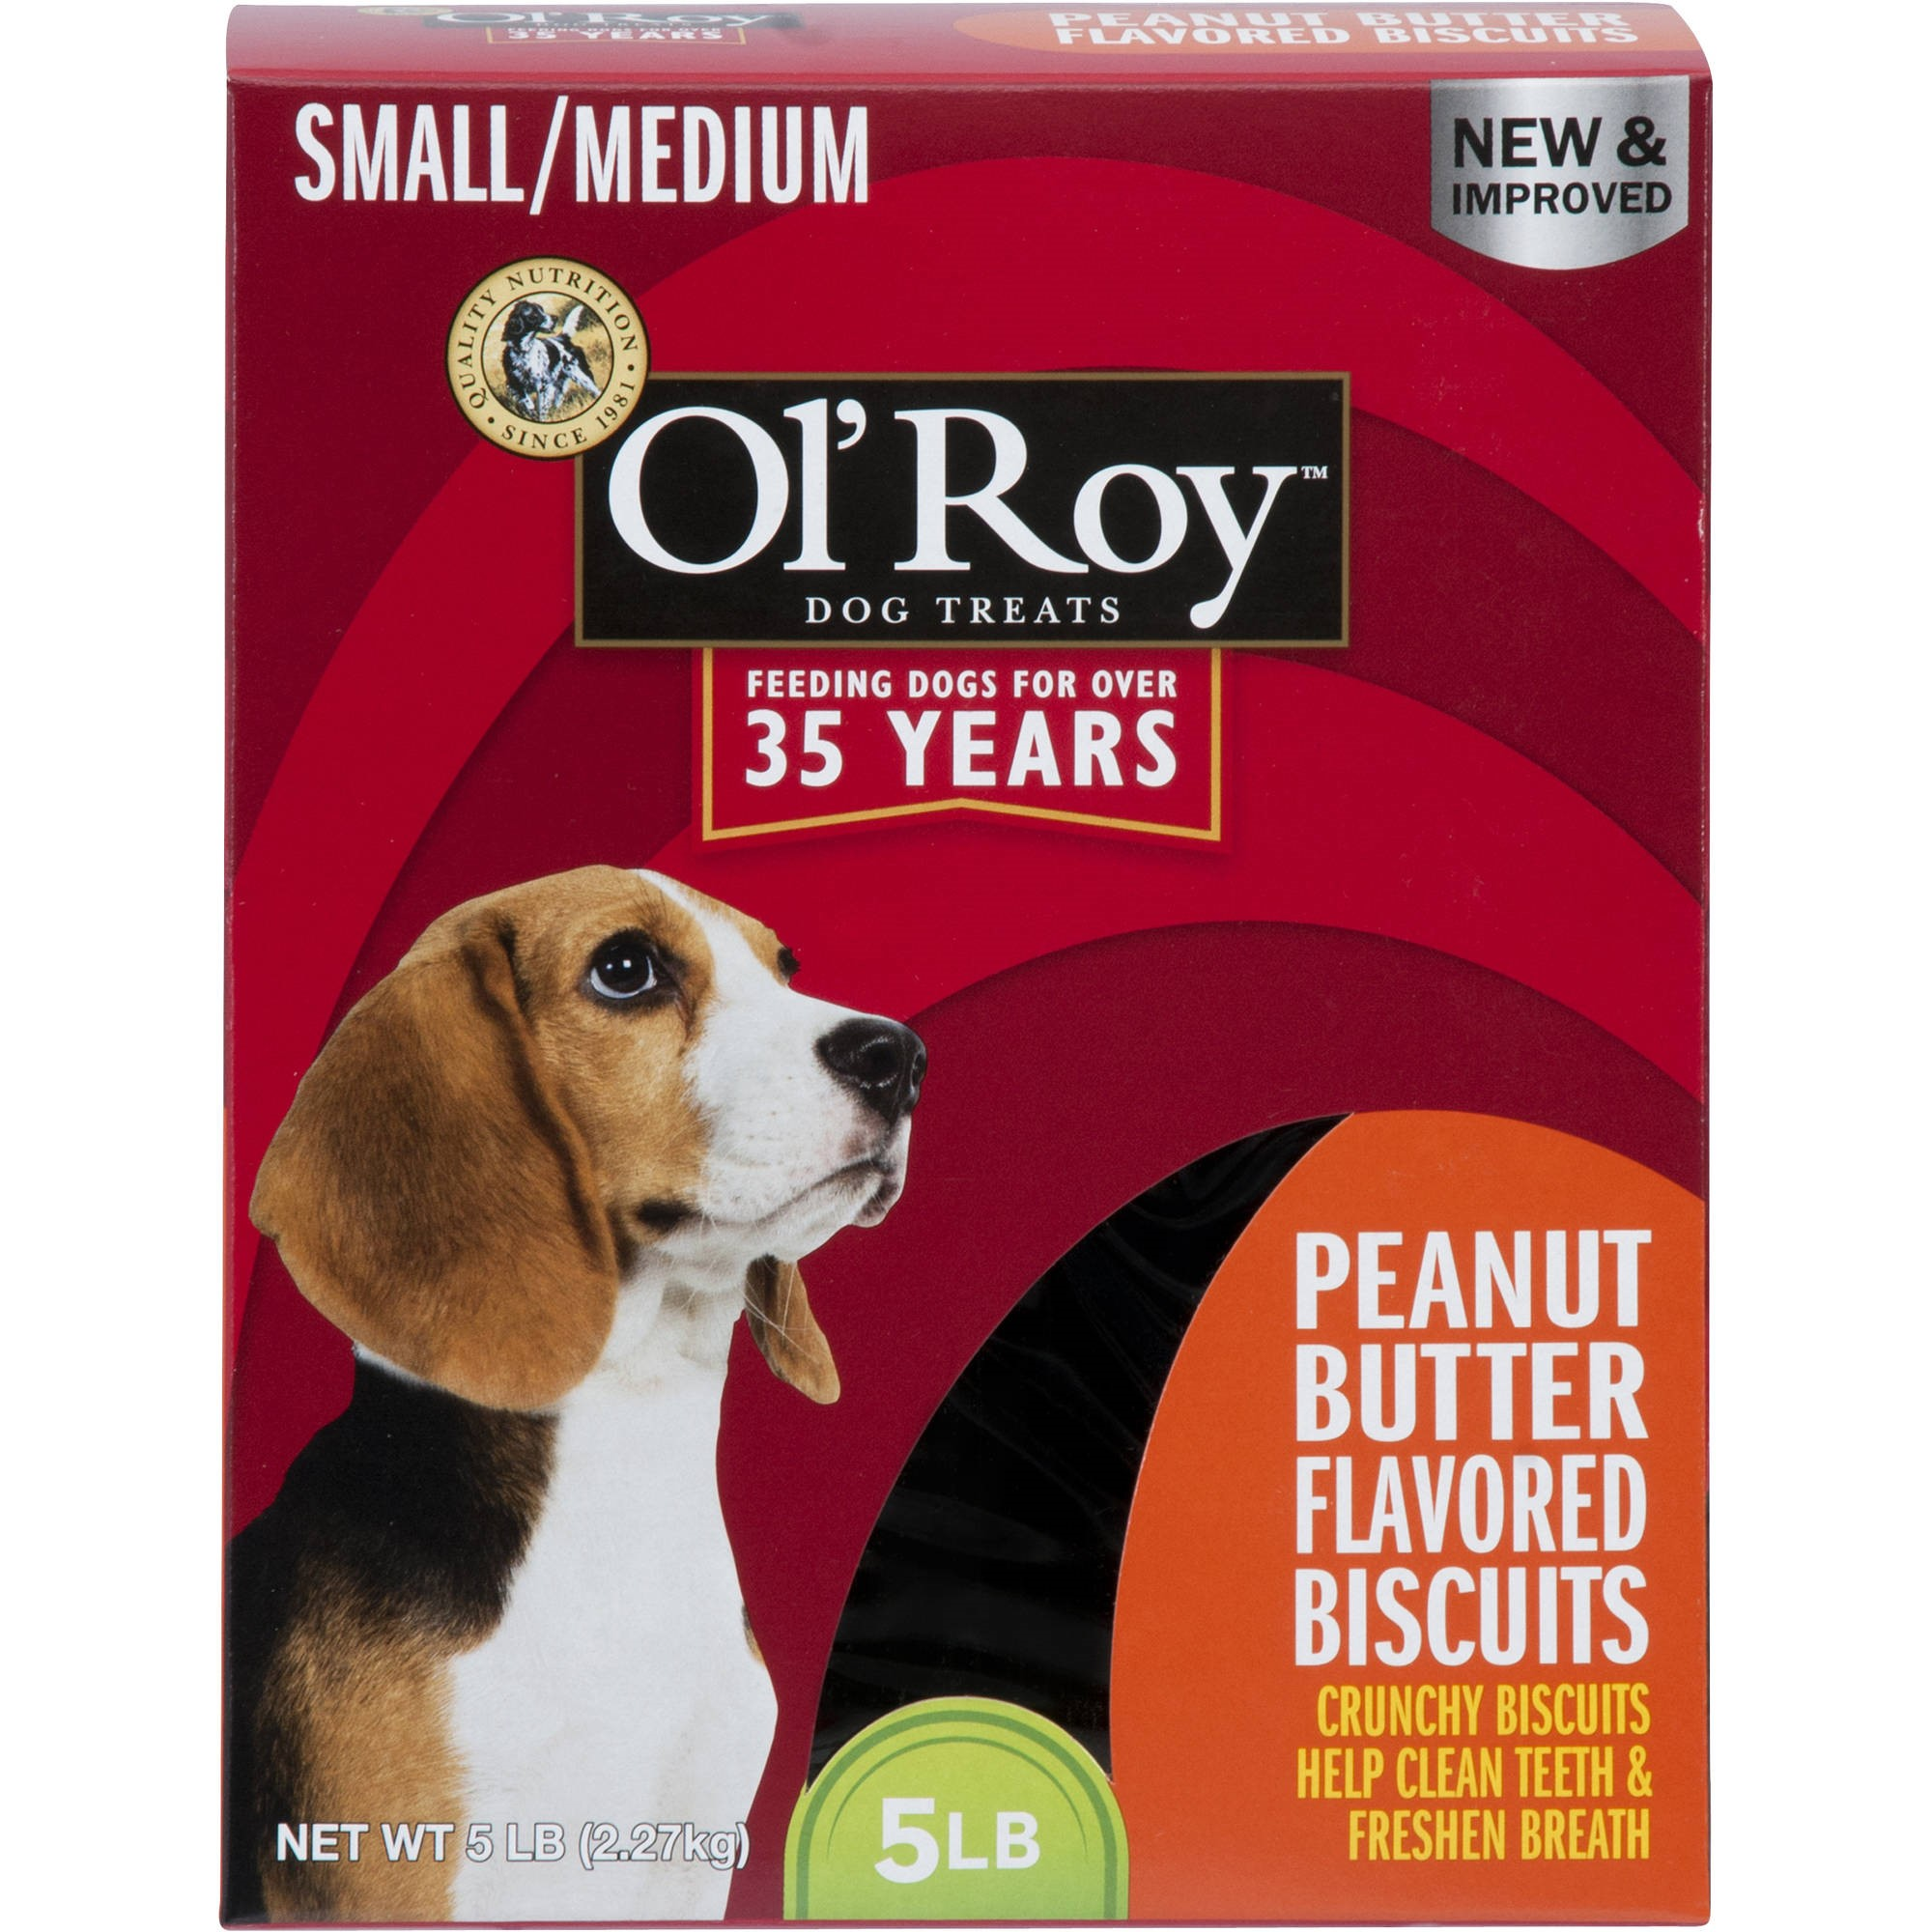 Ol' Roy Peanut Butter Flavored Biscuits, Small/Medium Breed, 5 lb